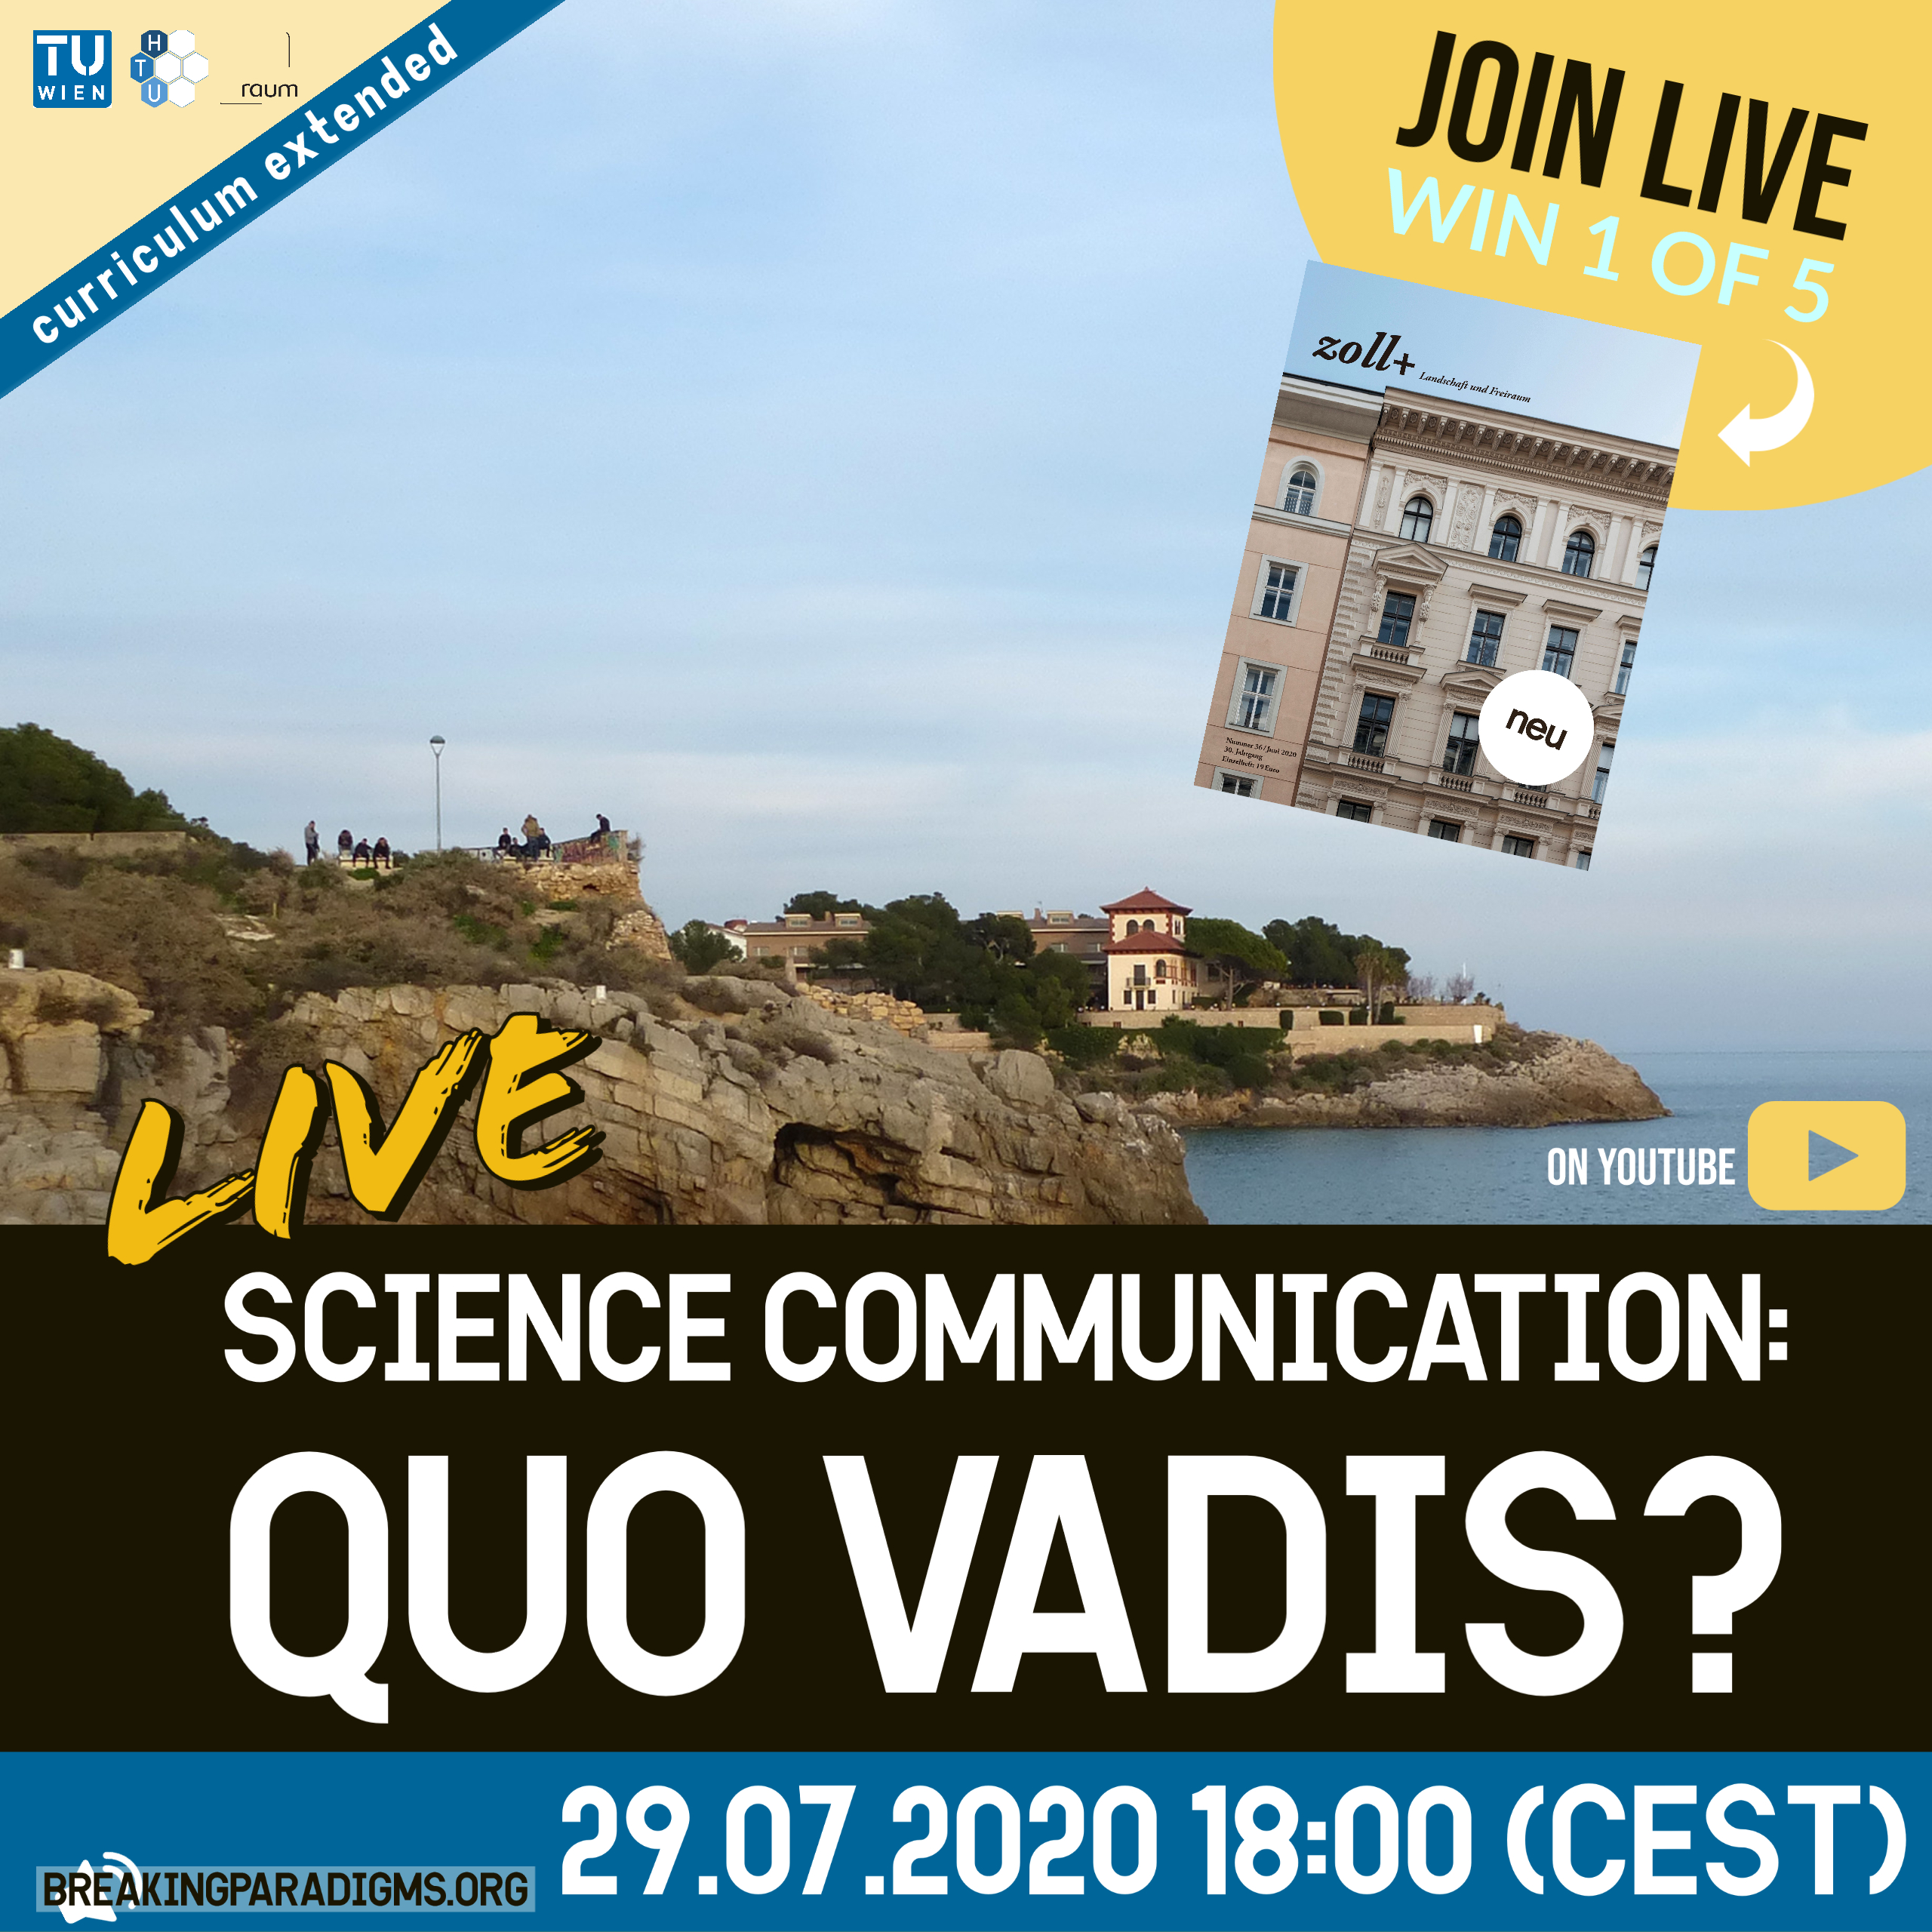 science communication: quo vadis?